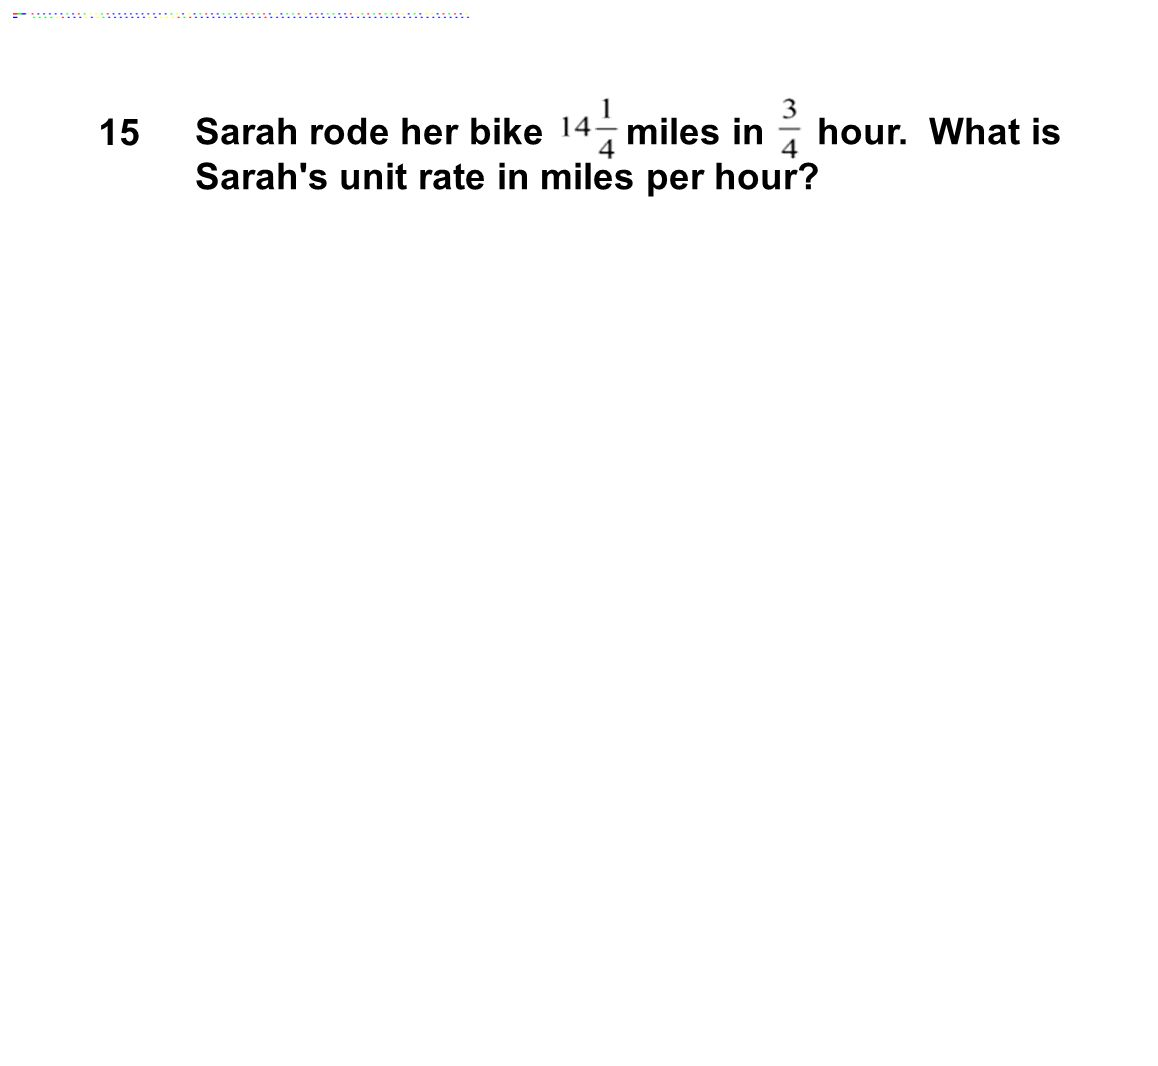 15 Sarah rode her bike miles in hour. What is Sarah's unit rate in miles per hour?